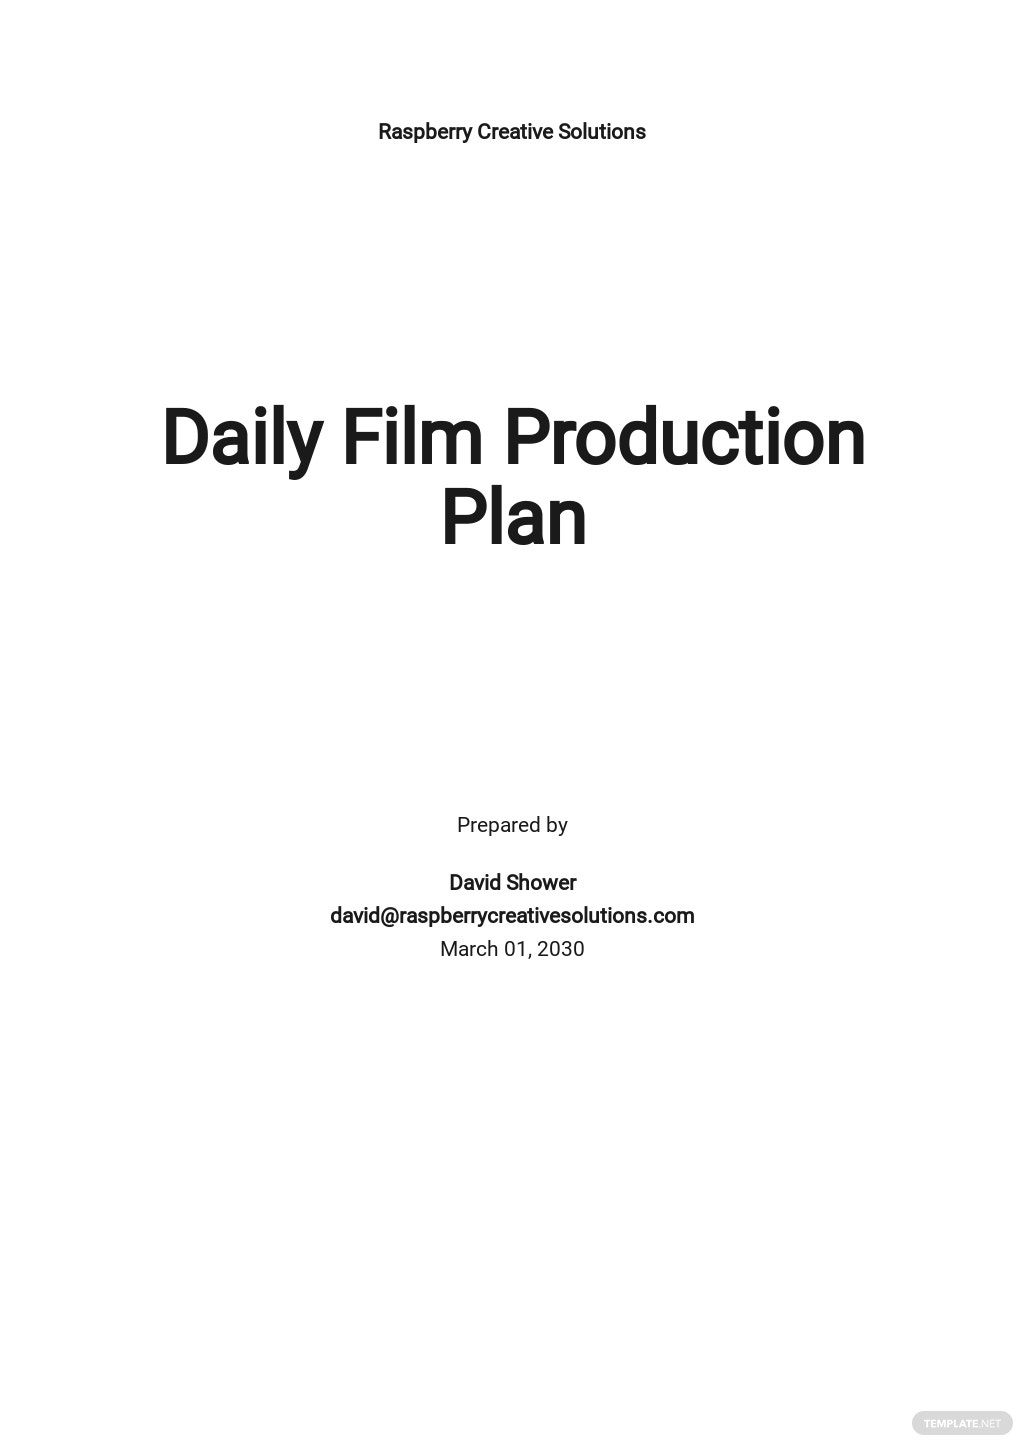 Daily Production Plan Template.jpe